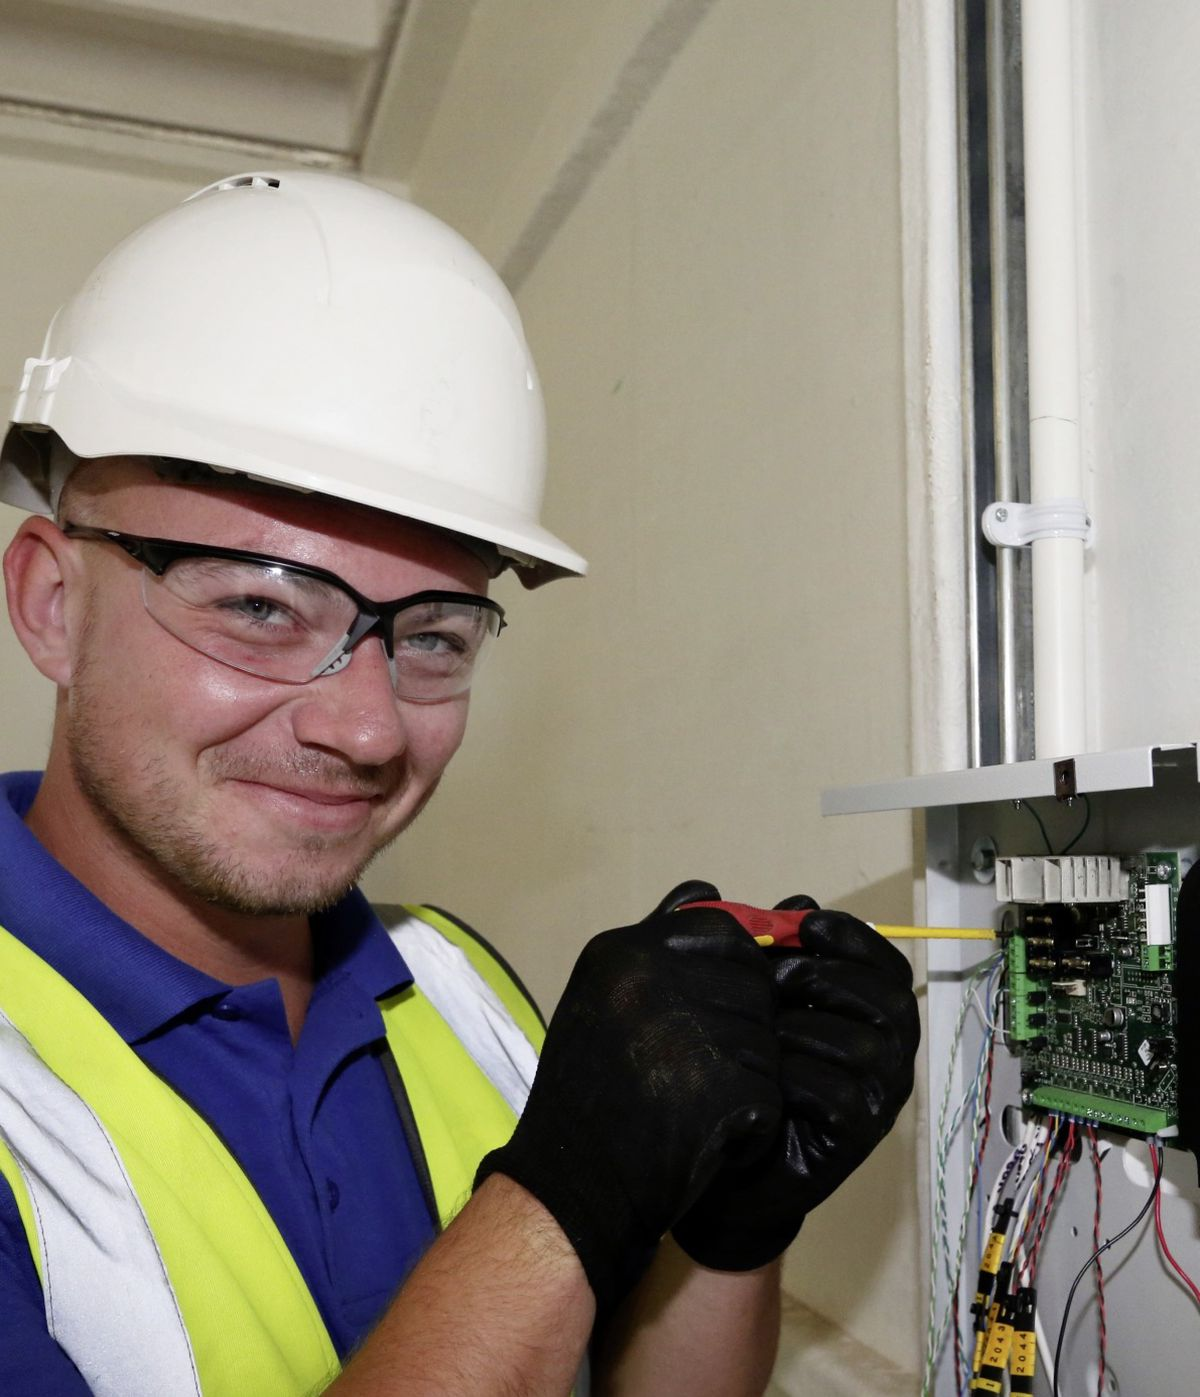 Matt Athon works on the electrics at the waste transfer station.                                 (22438513)